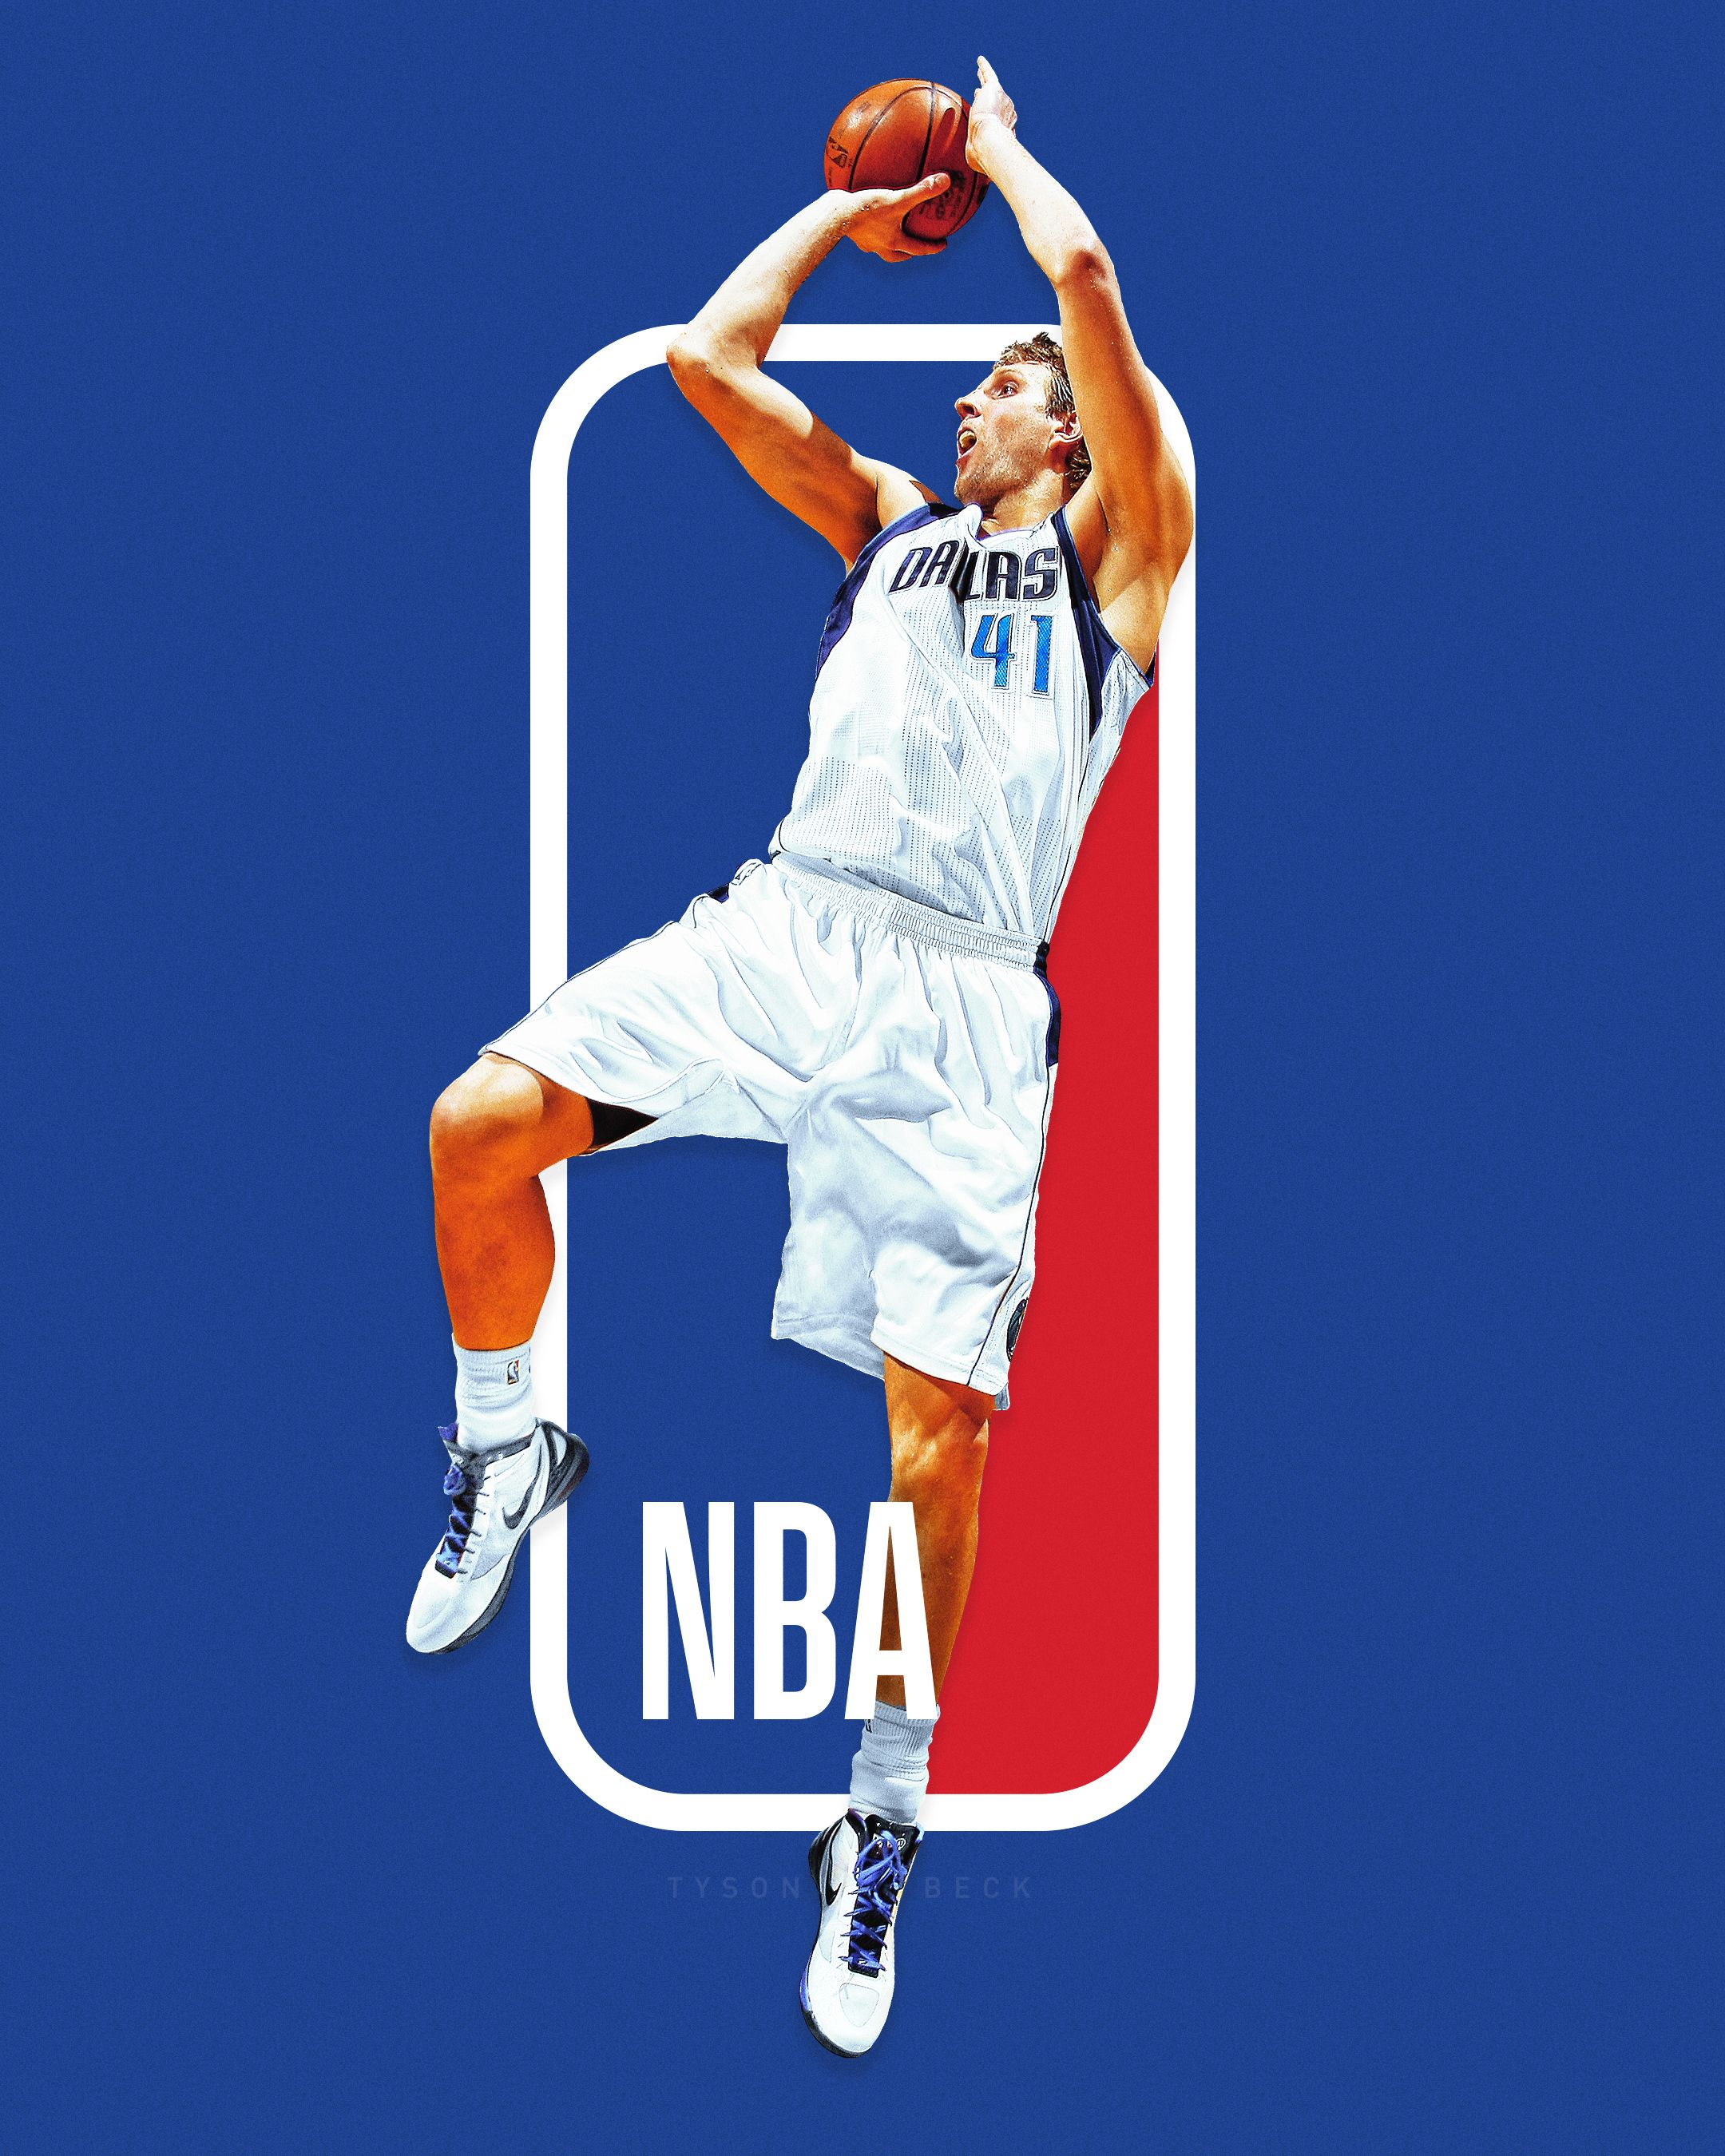 The Next NBA logo? NBA Logoman Series on Behance Nba